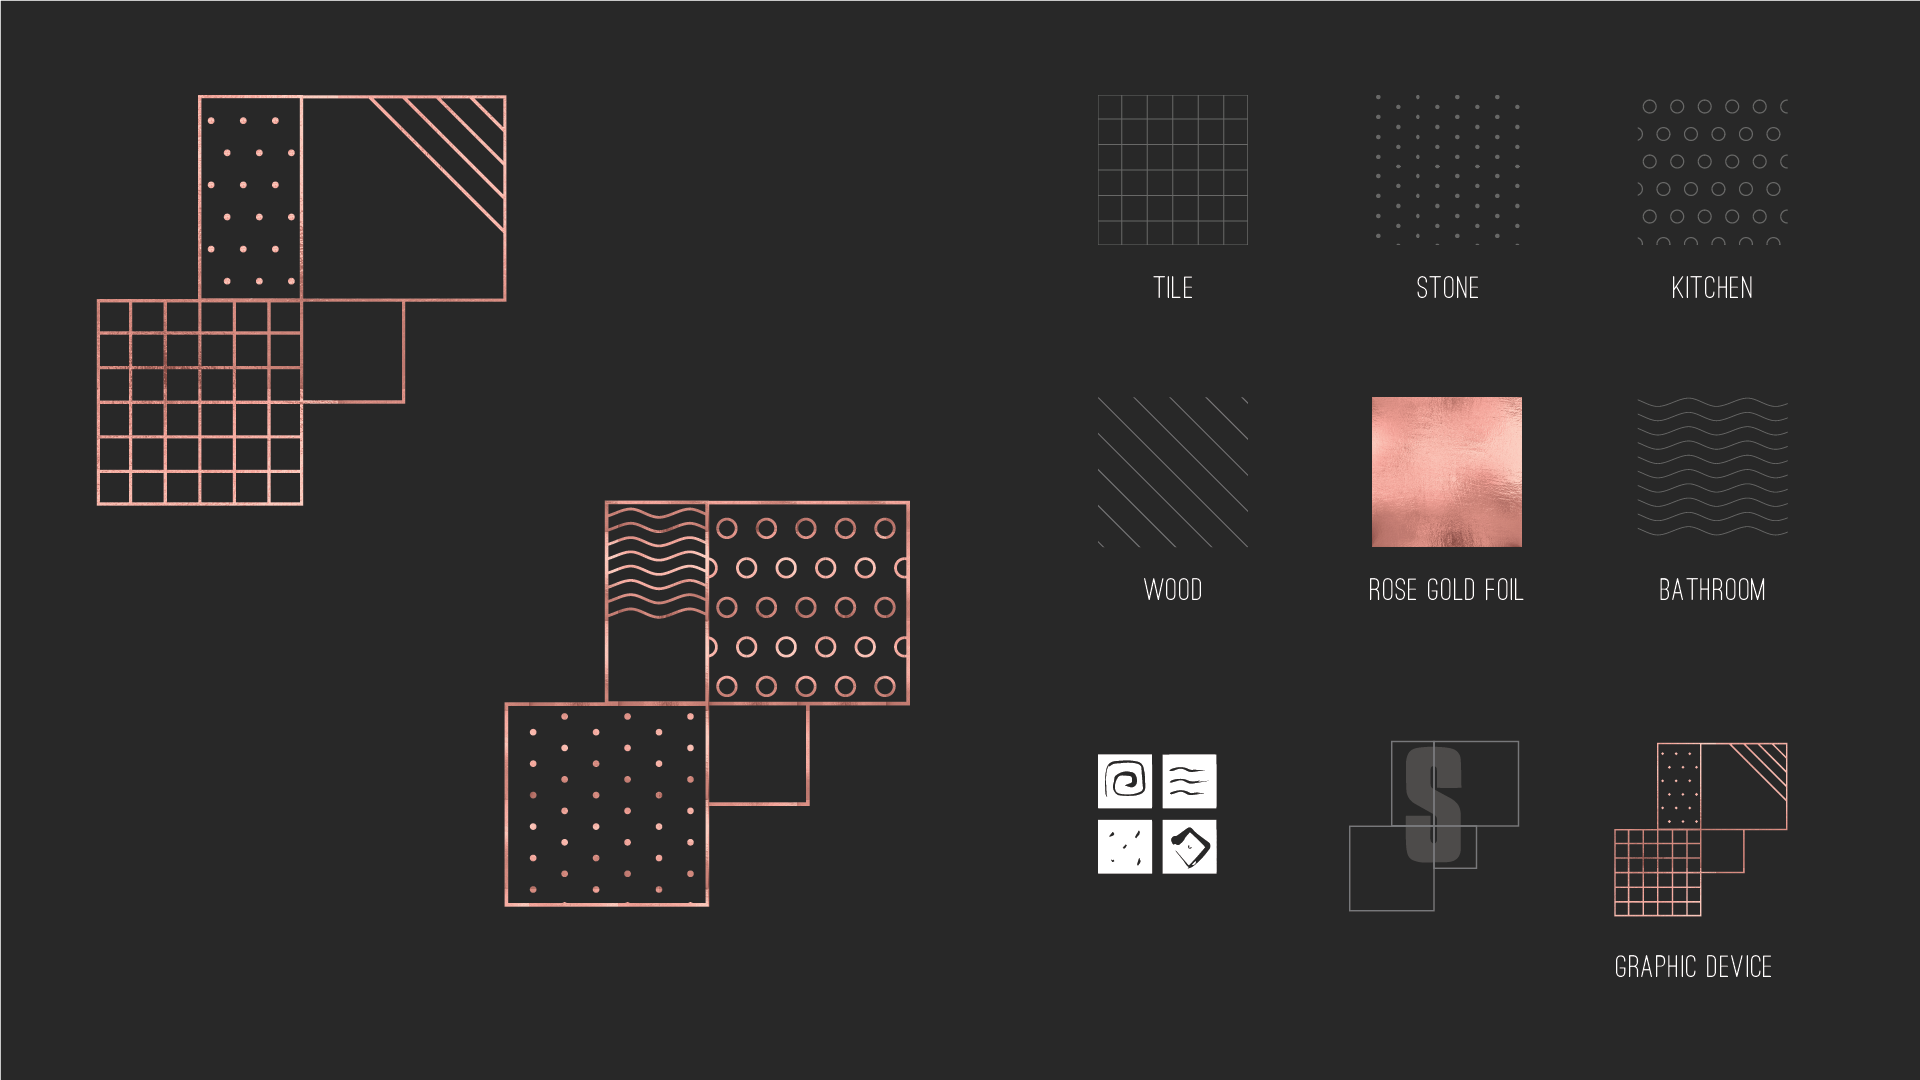 TileStyle Select Event Identity Design